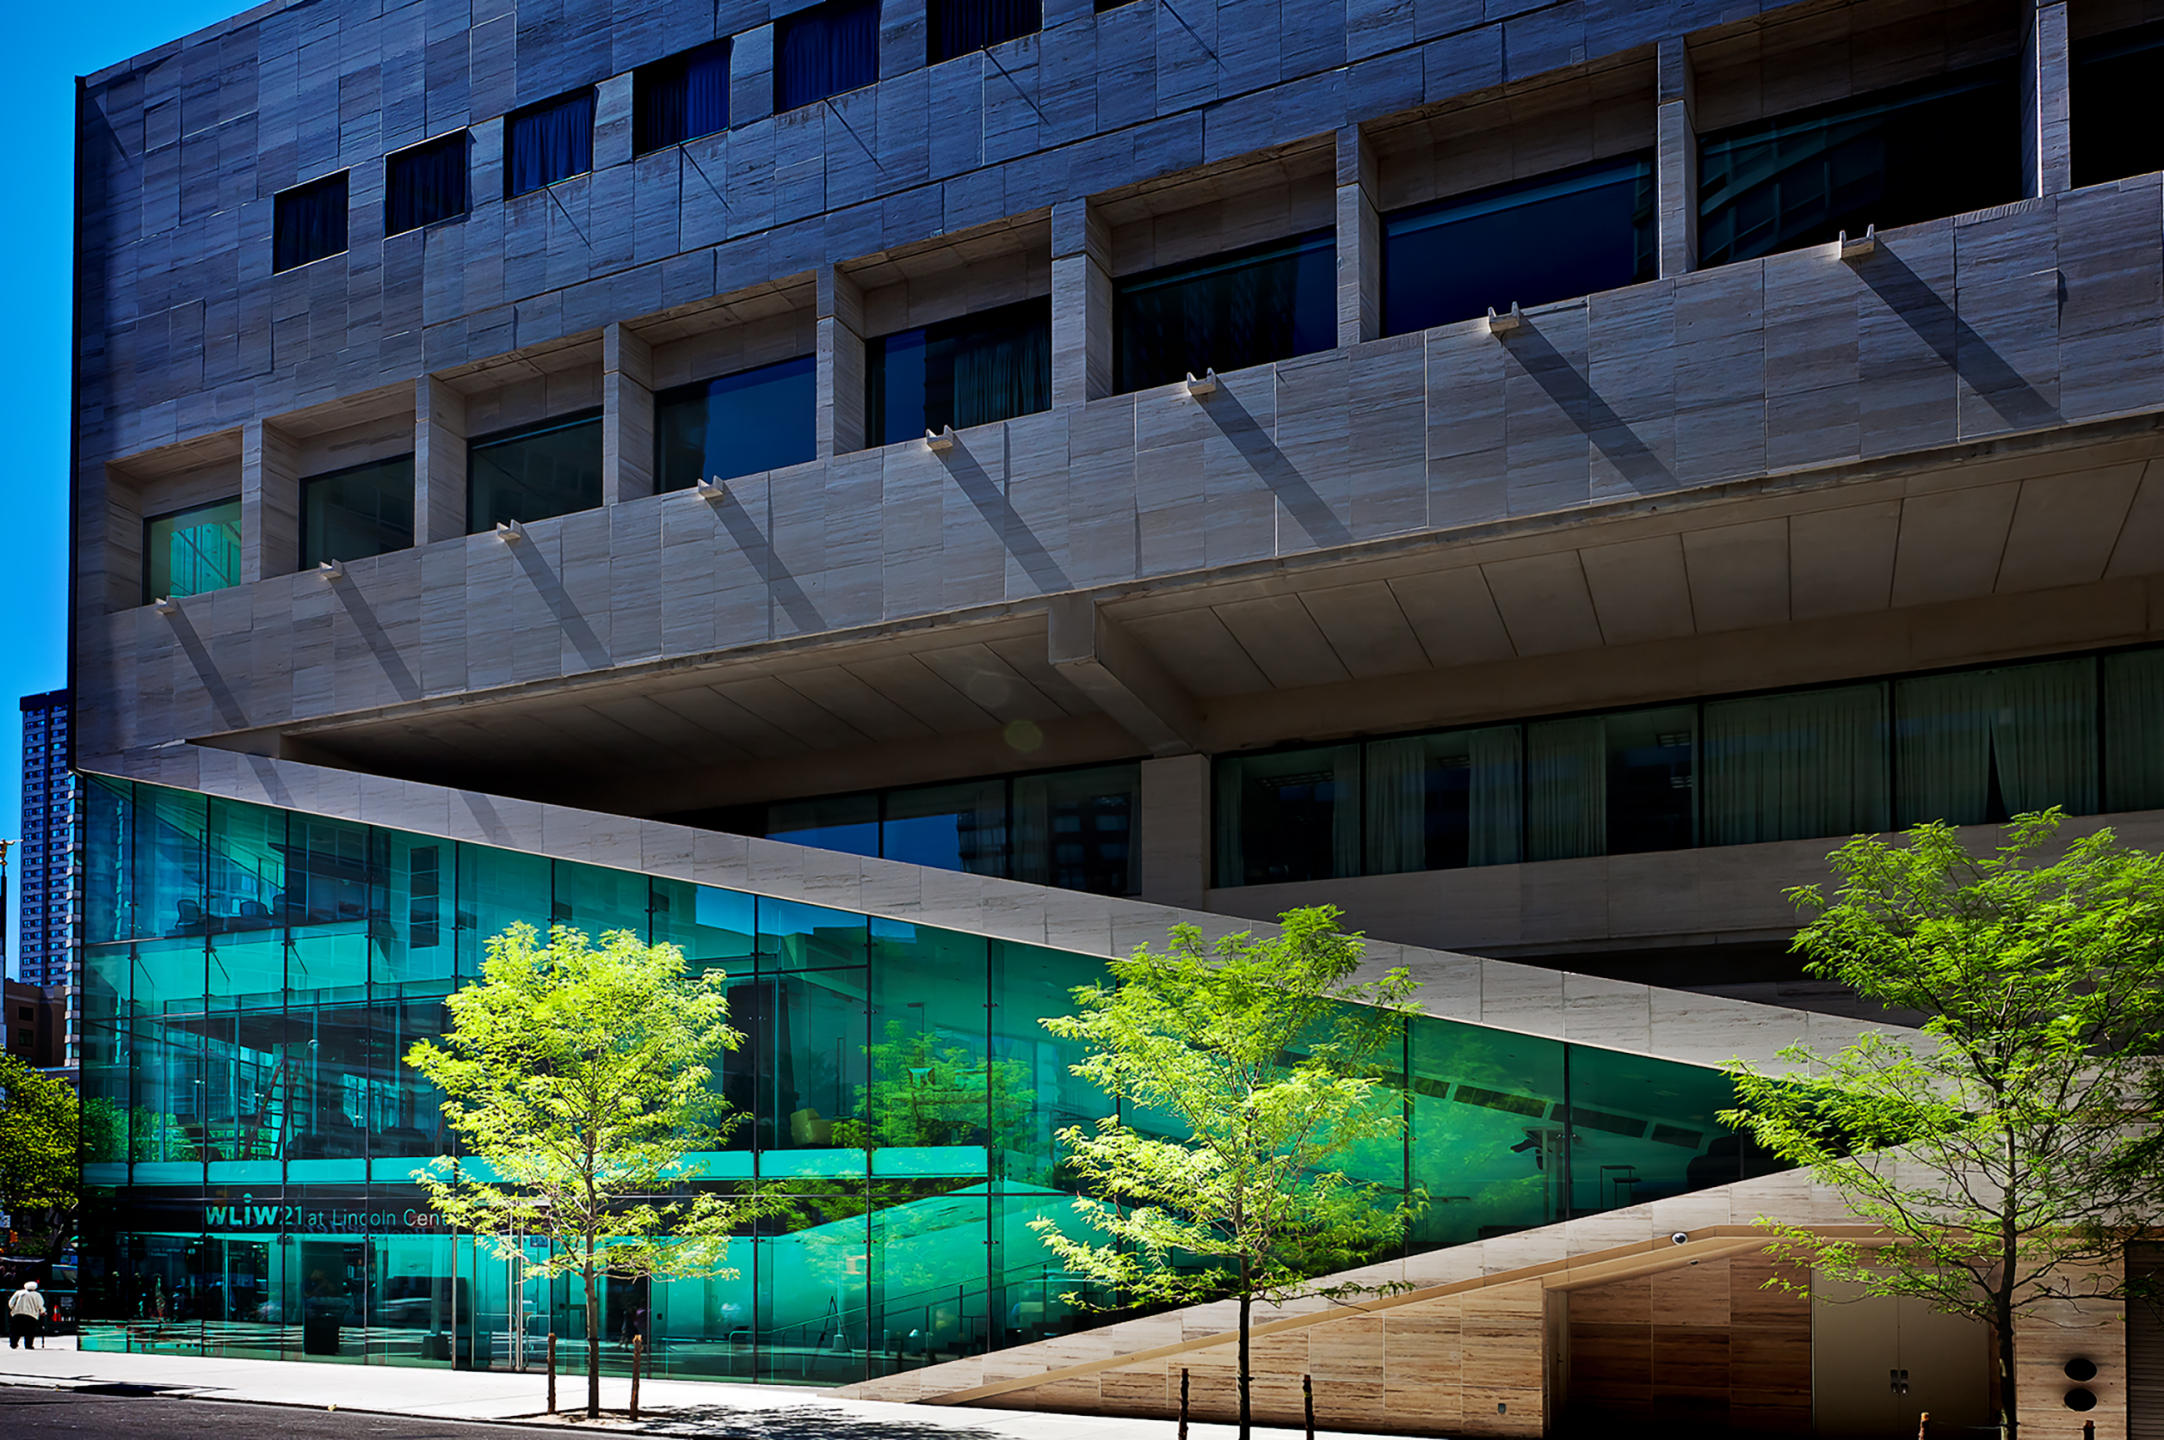 Alice Tully Hall, NYC Lincoln Center renovated by Diller Scofidio  + Renfro WNET Television studio space on the northside of the building : Miscellanous Projects : New York NY Architectural Photographer | Interior and Exterior